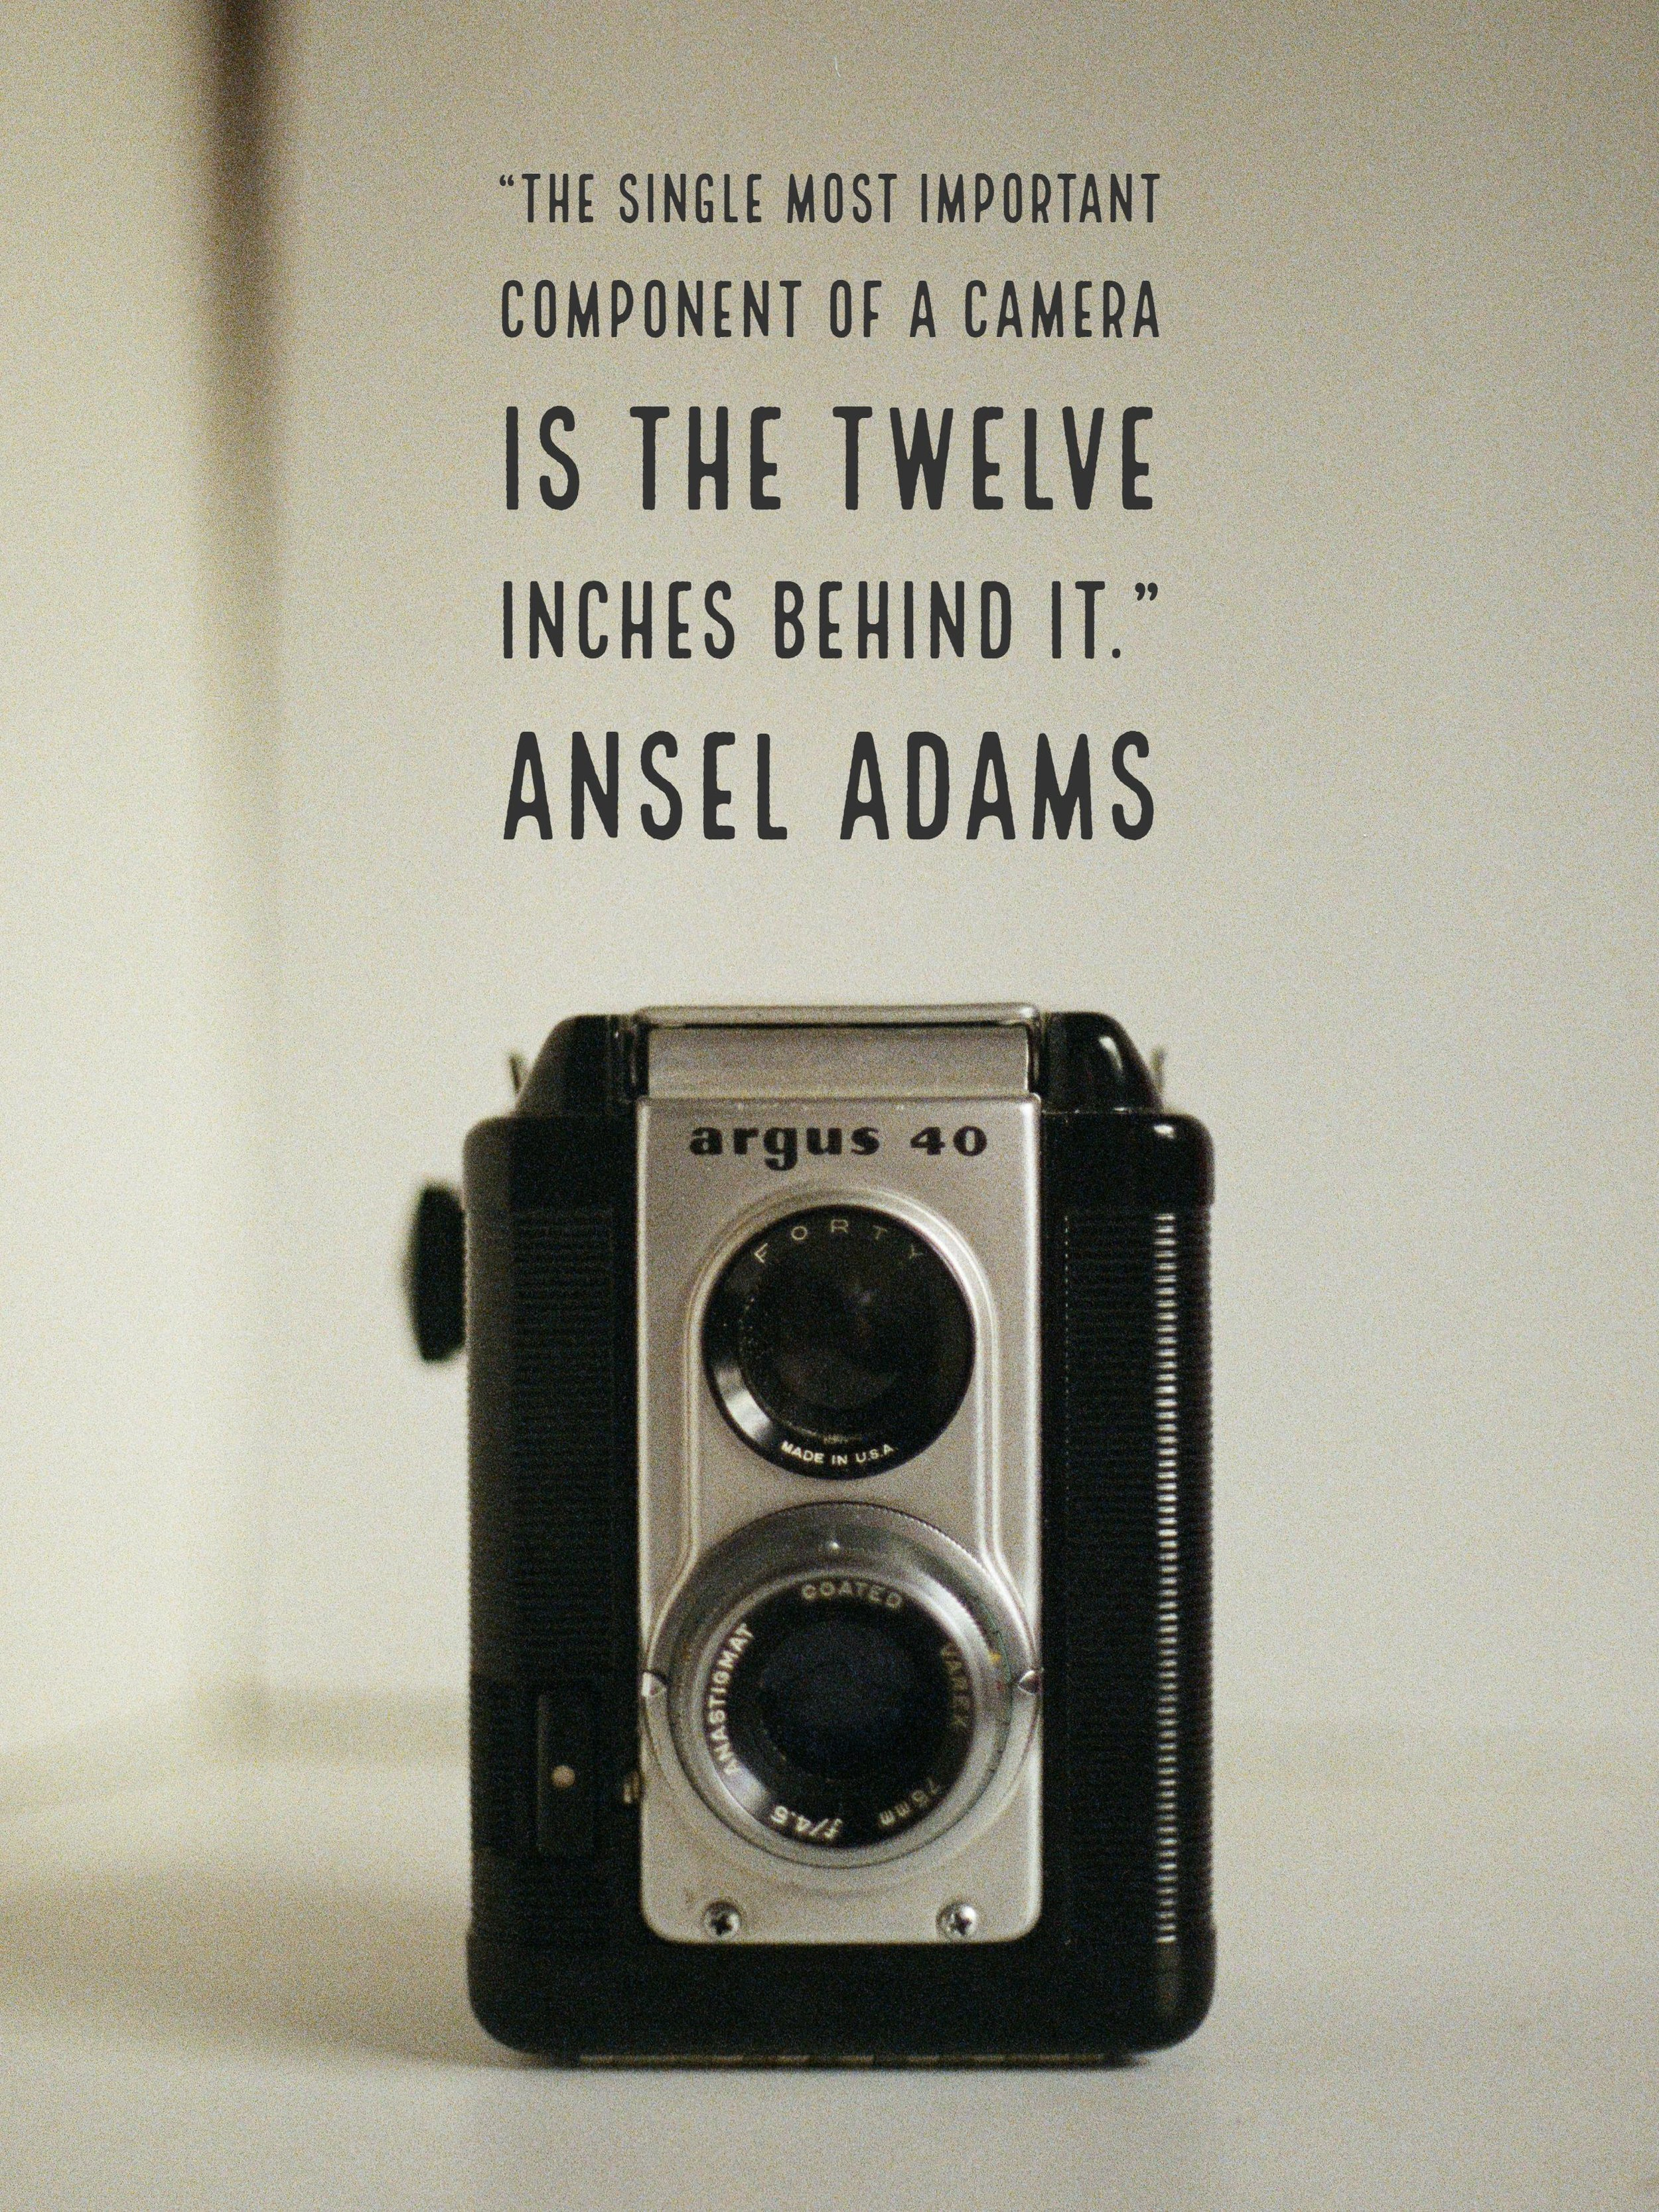 """""""The single most important component of a camera is the twelve inches behind it."""" - Ansel Adams"""